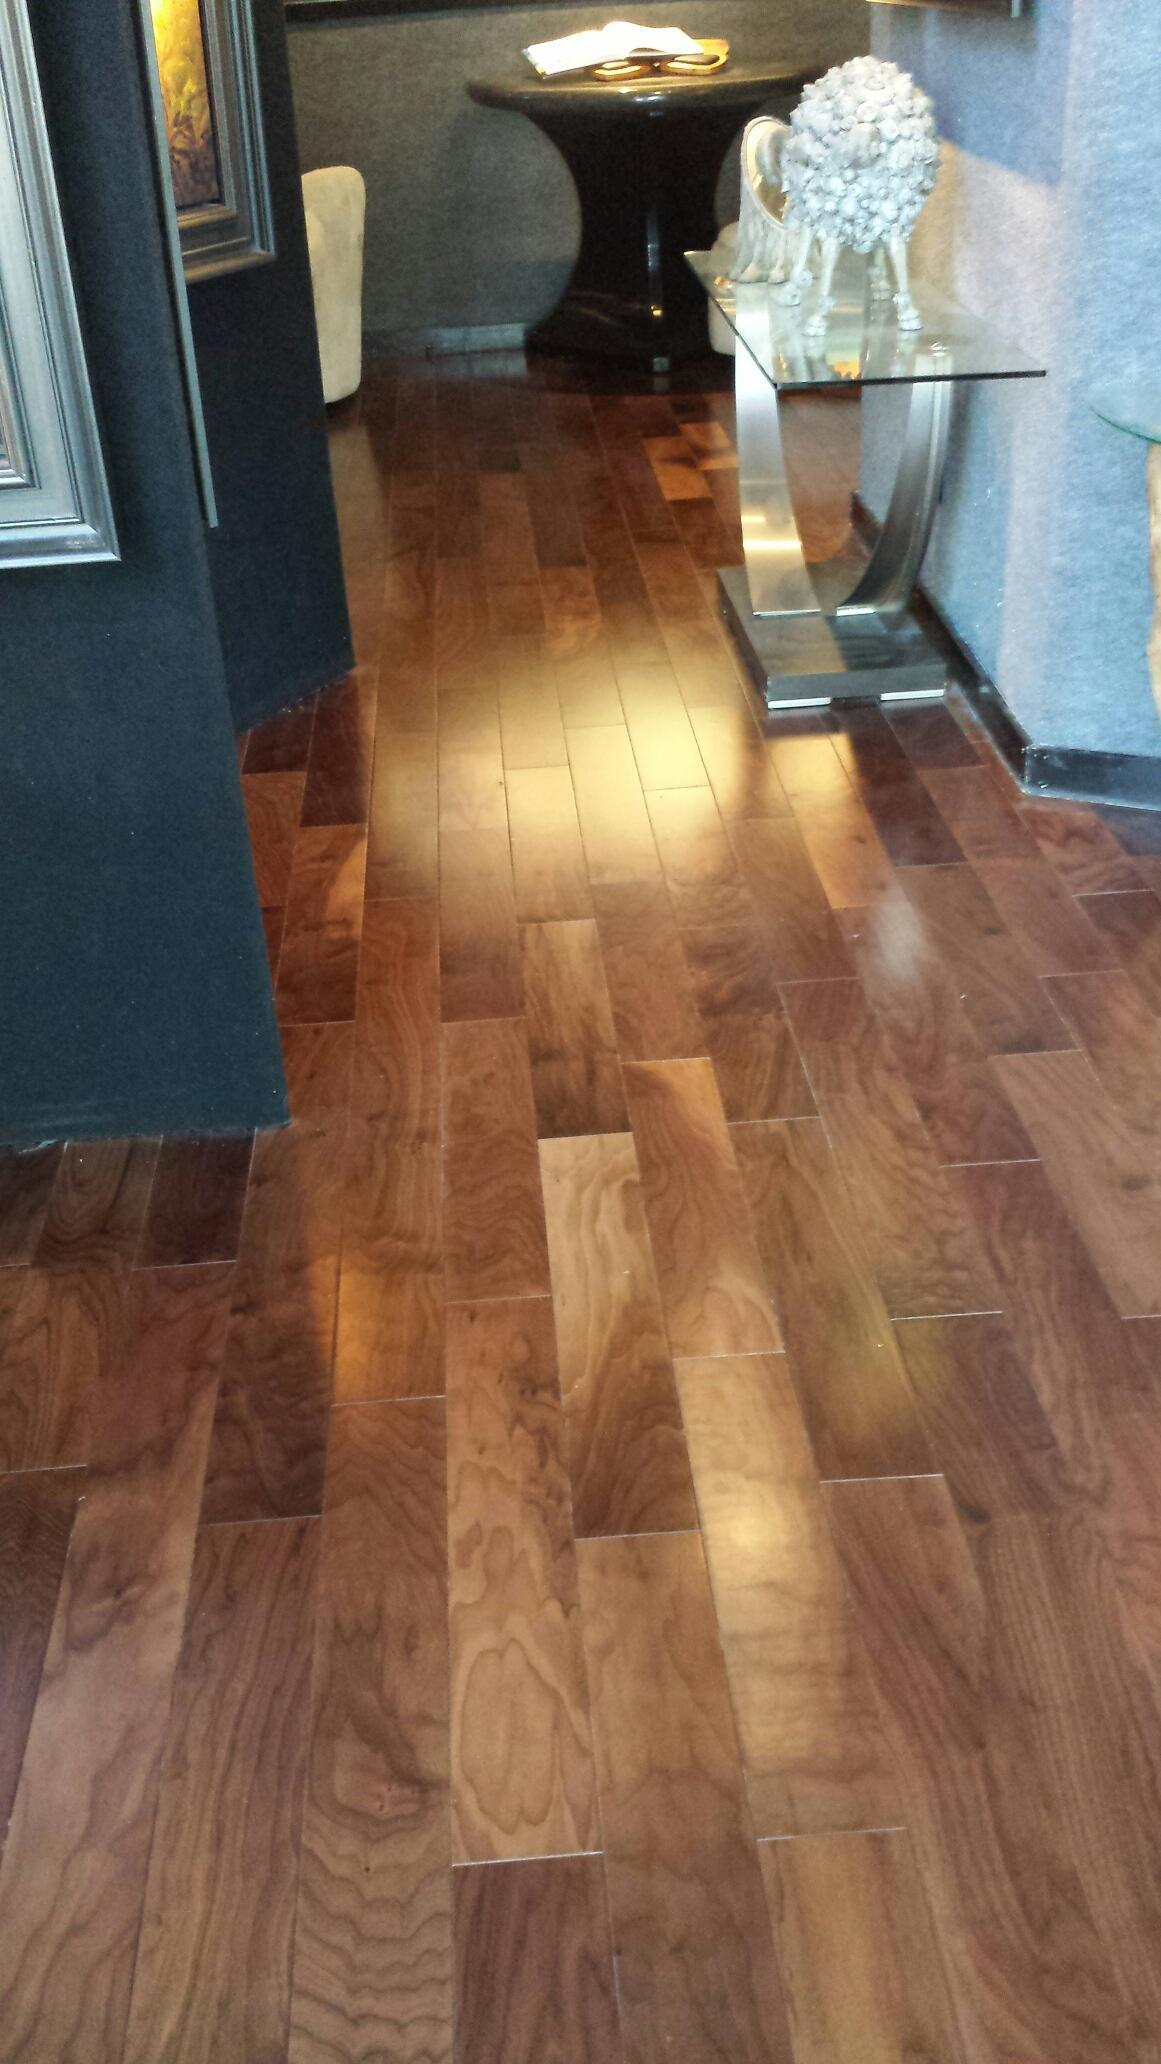 Prefinish floors, engineered mellow brown, color installed in art gallery.